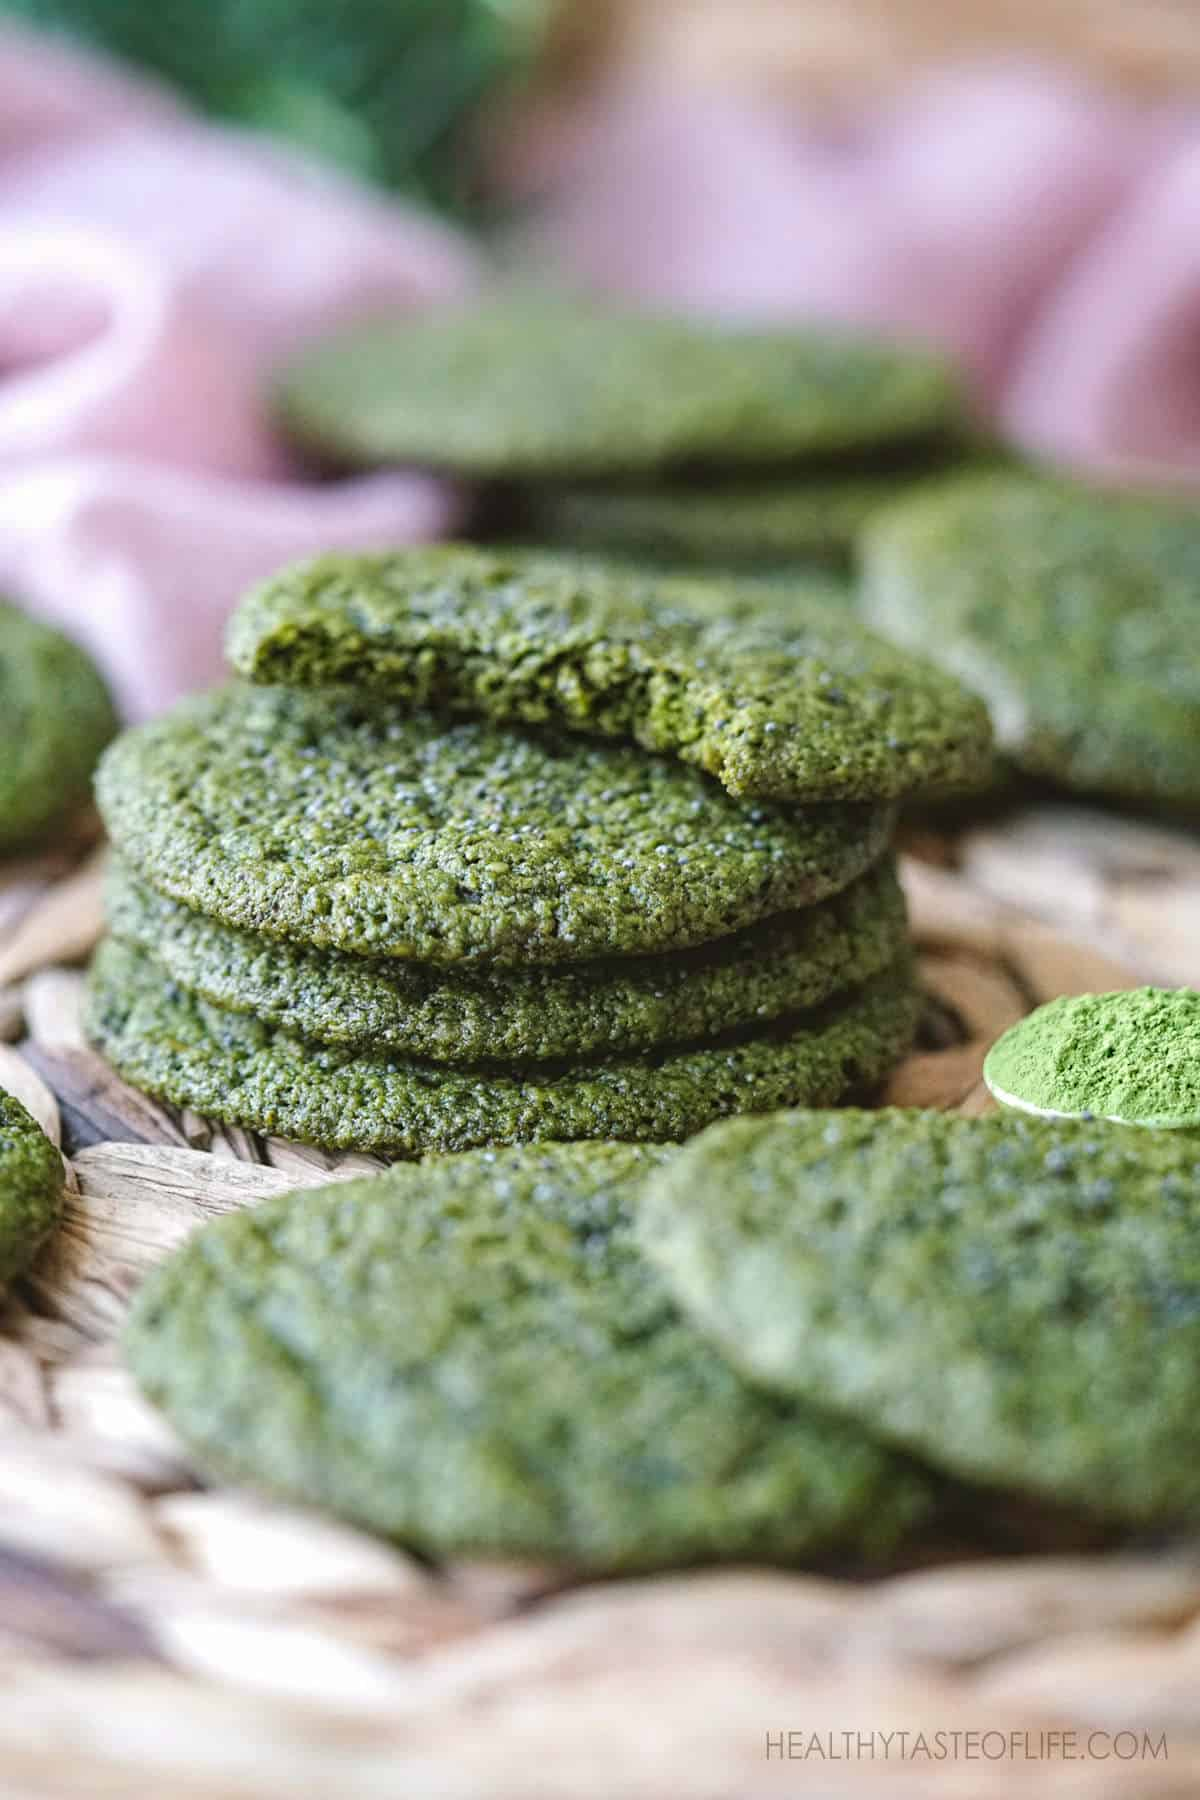 Healthy Vegan Matcha Cookies Recipe - Gluten Free Matcha cookies with oatmeal and seeds. Easy matcha cookie recipe without refined sugar and egg. Chewy, crisp and delicious #matchacookies #recipe #healthy #vegan #glutenfreecookies #matchasugarcookies